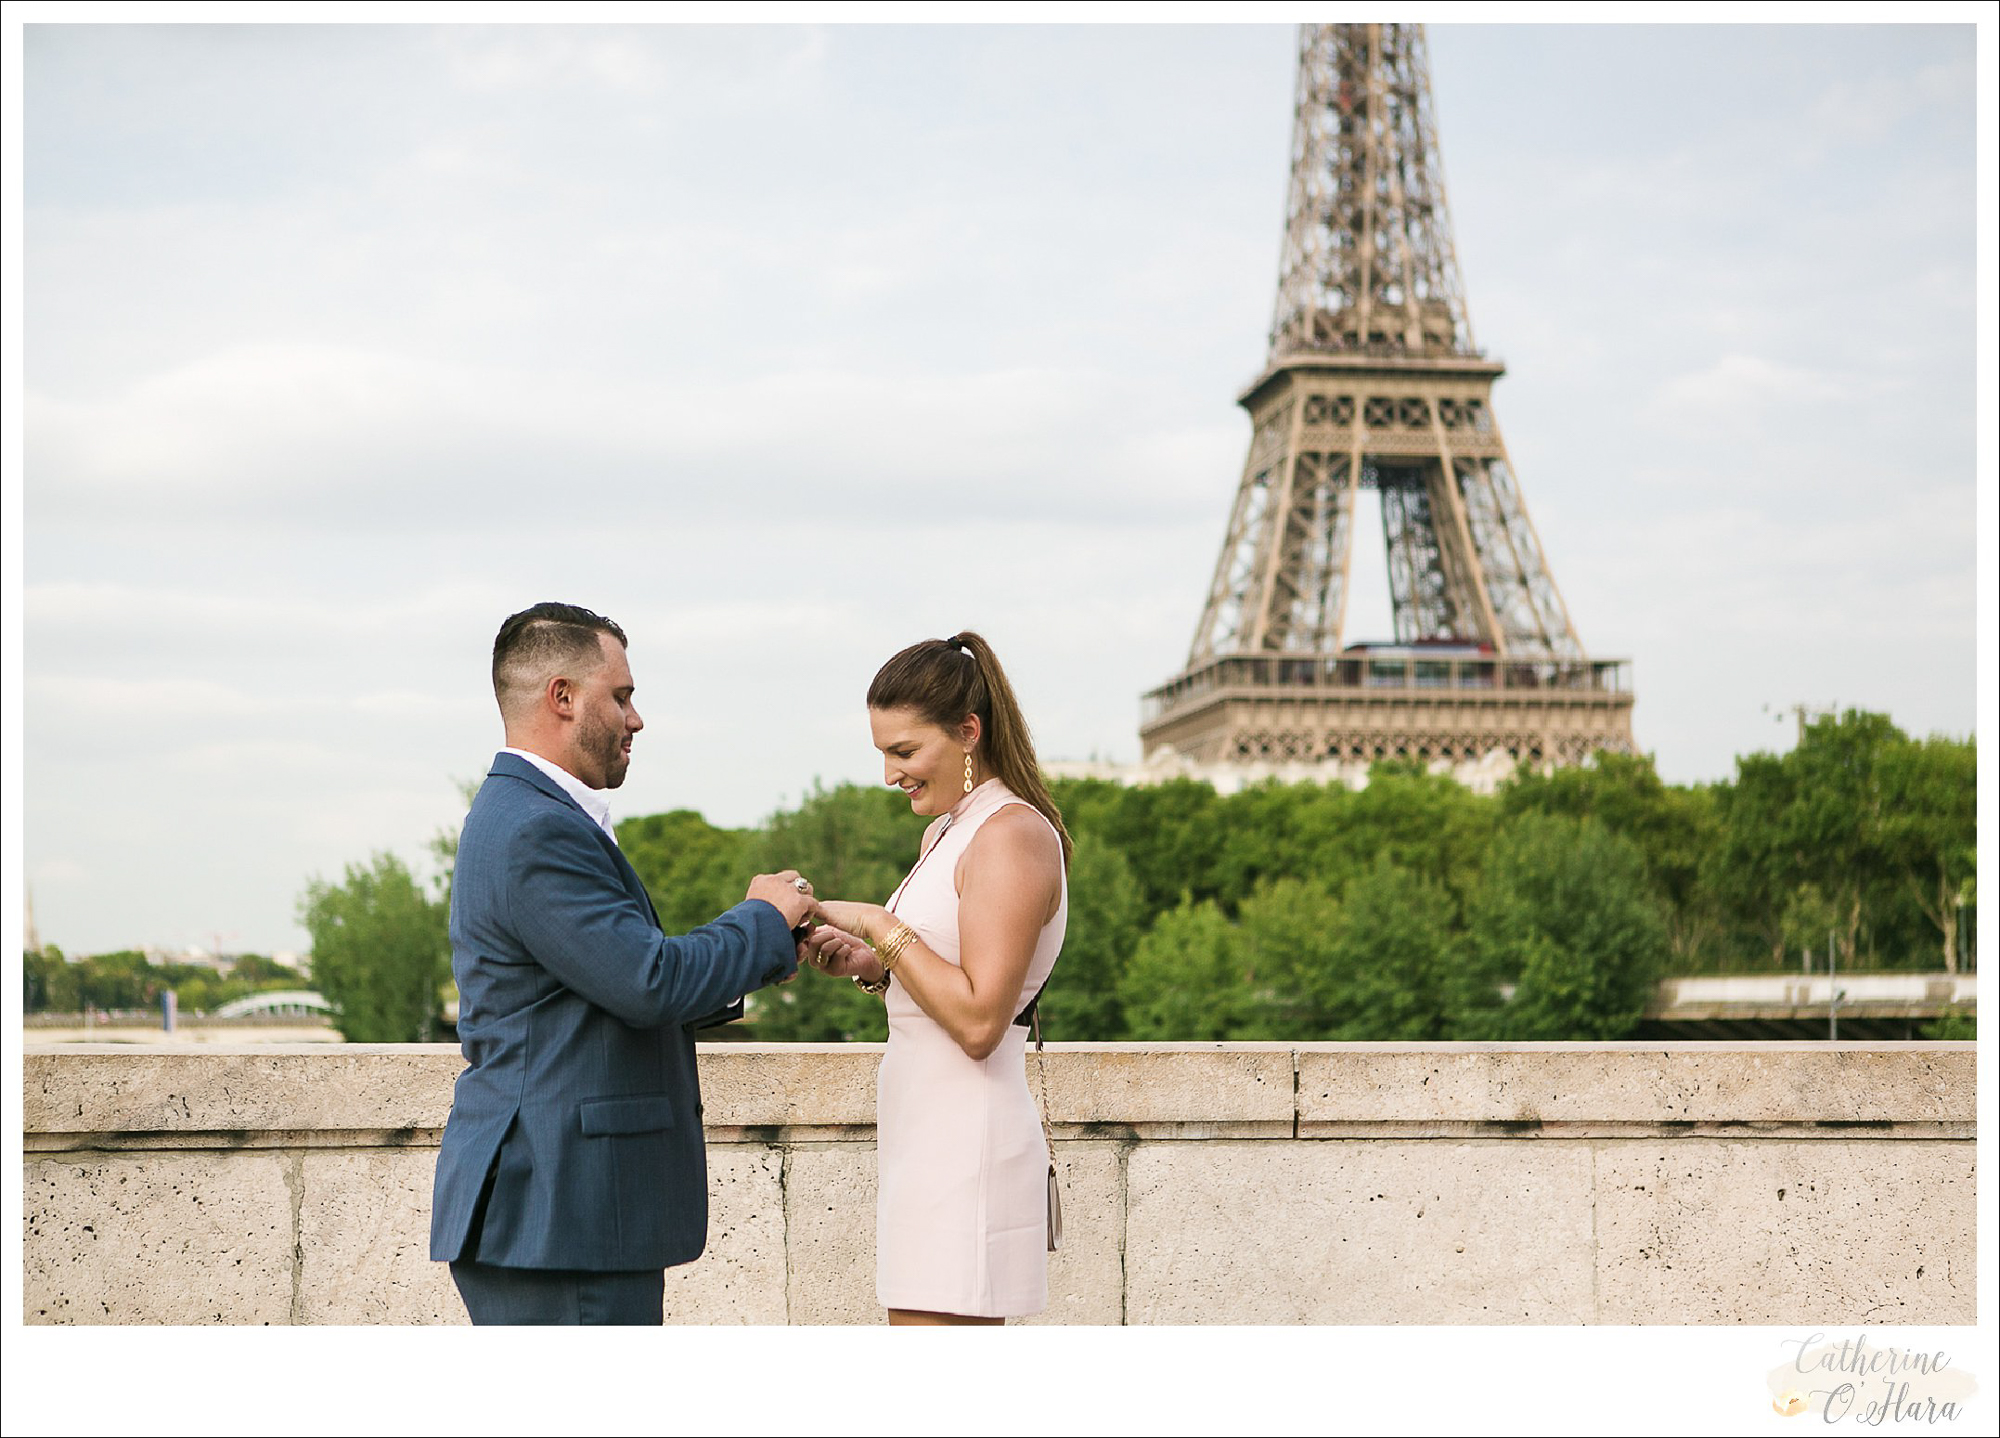 surprise proposal engagement photographer paris france-23.jpg